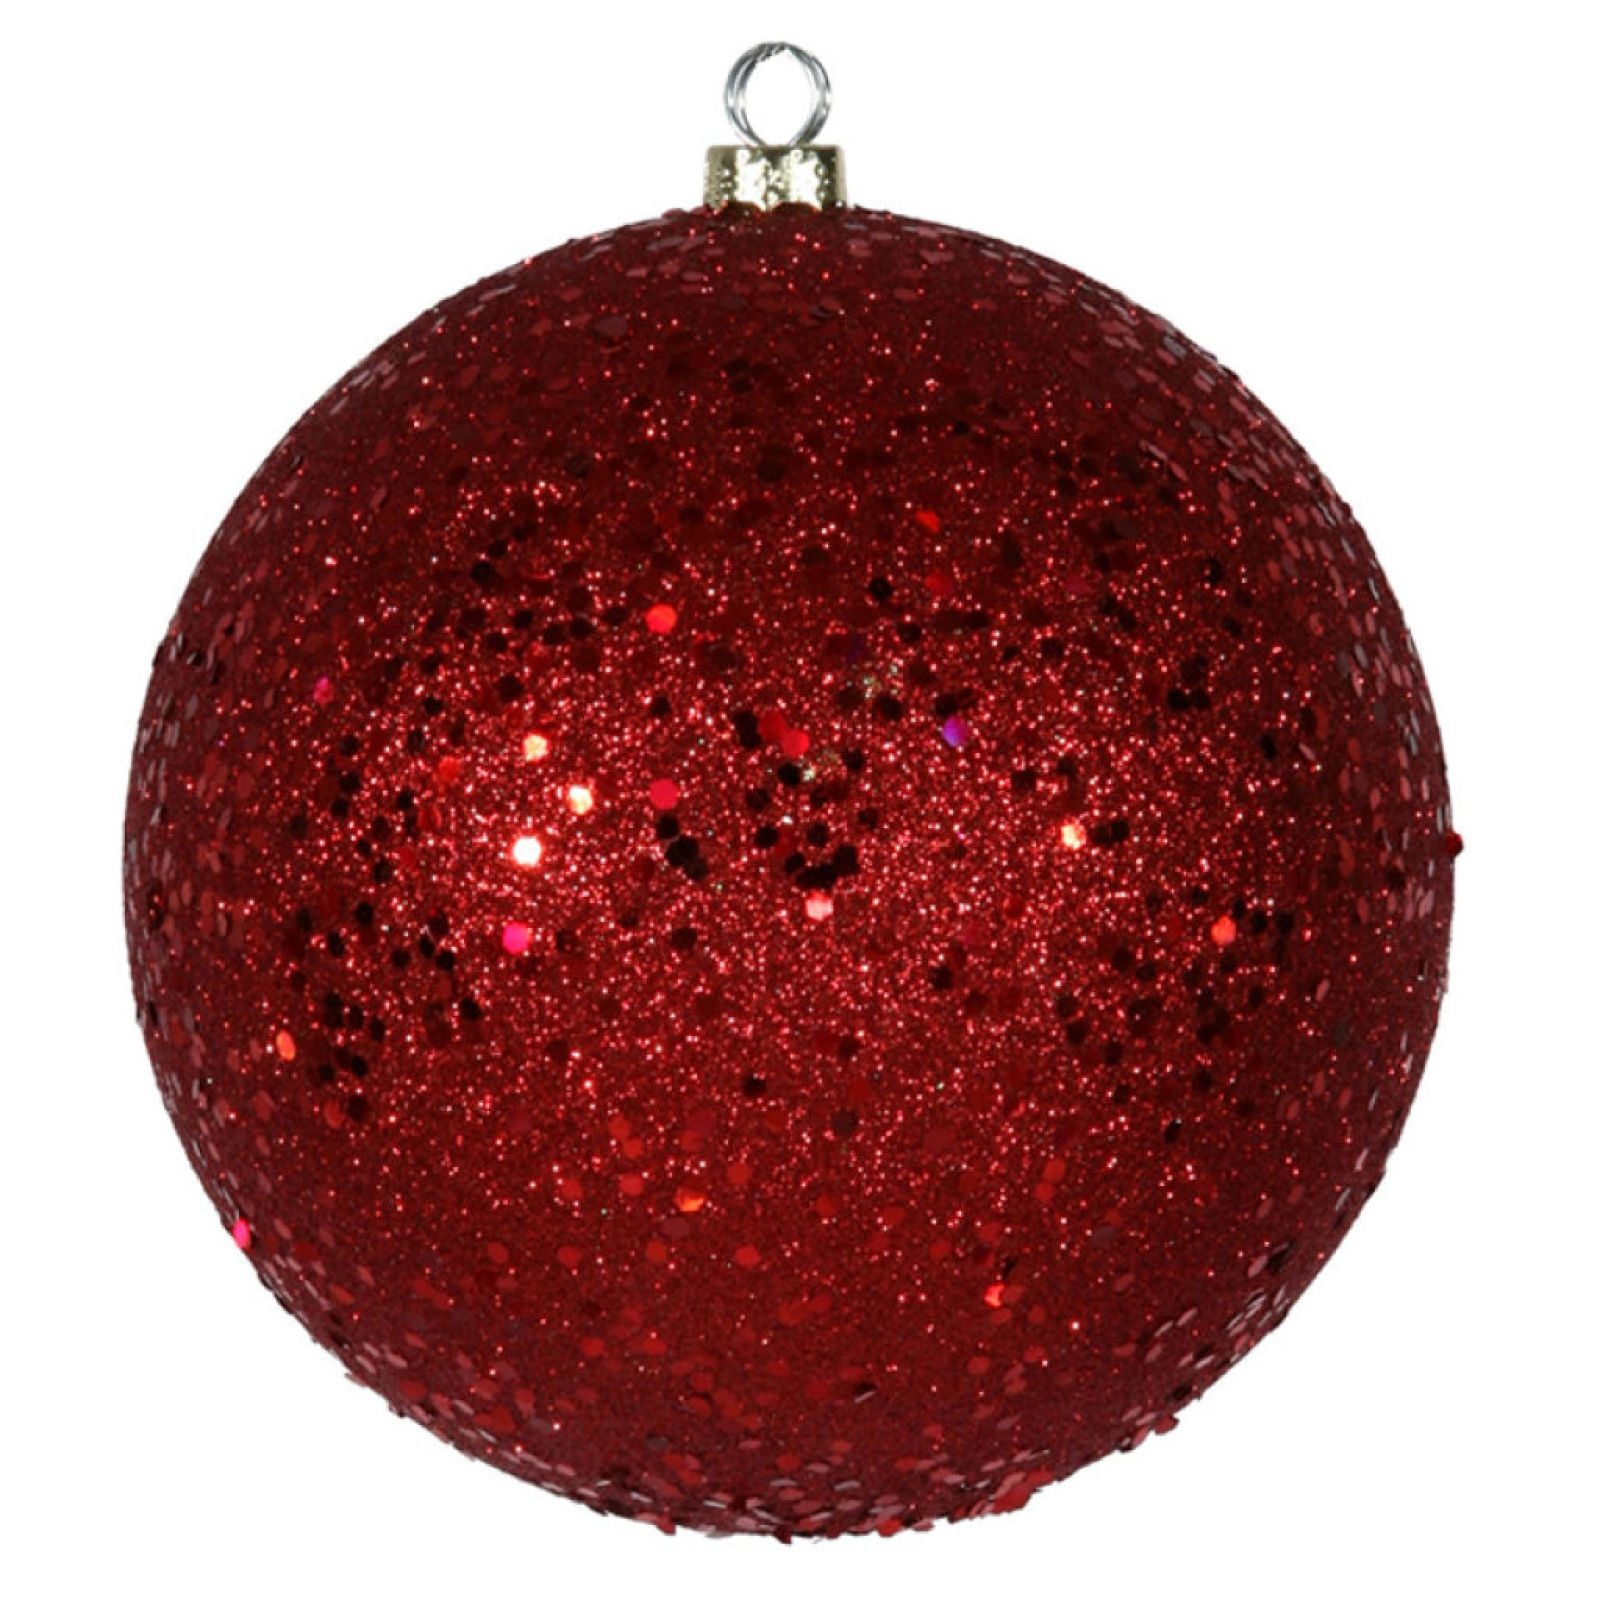 Red Holographic Glitter Shatterproof Christmas Ball Ornament Christmas Ornaments Ornaments Ball Ornaments